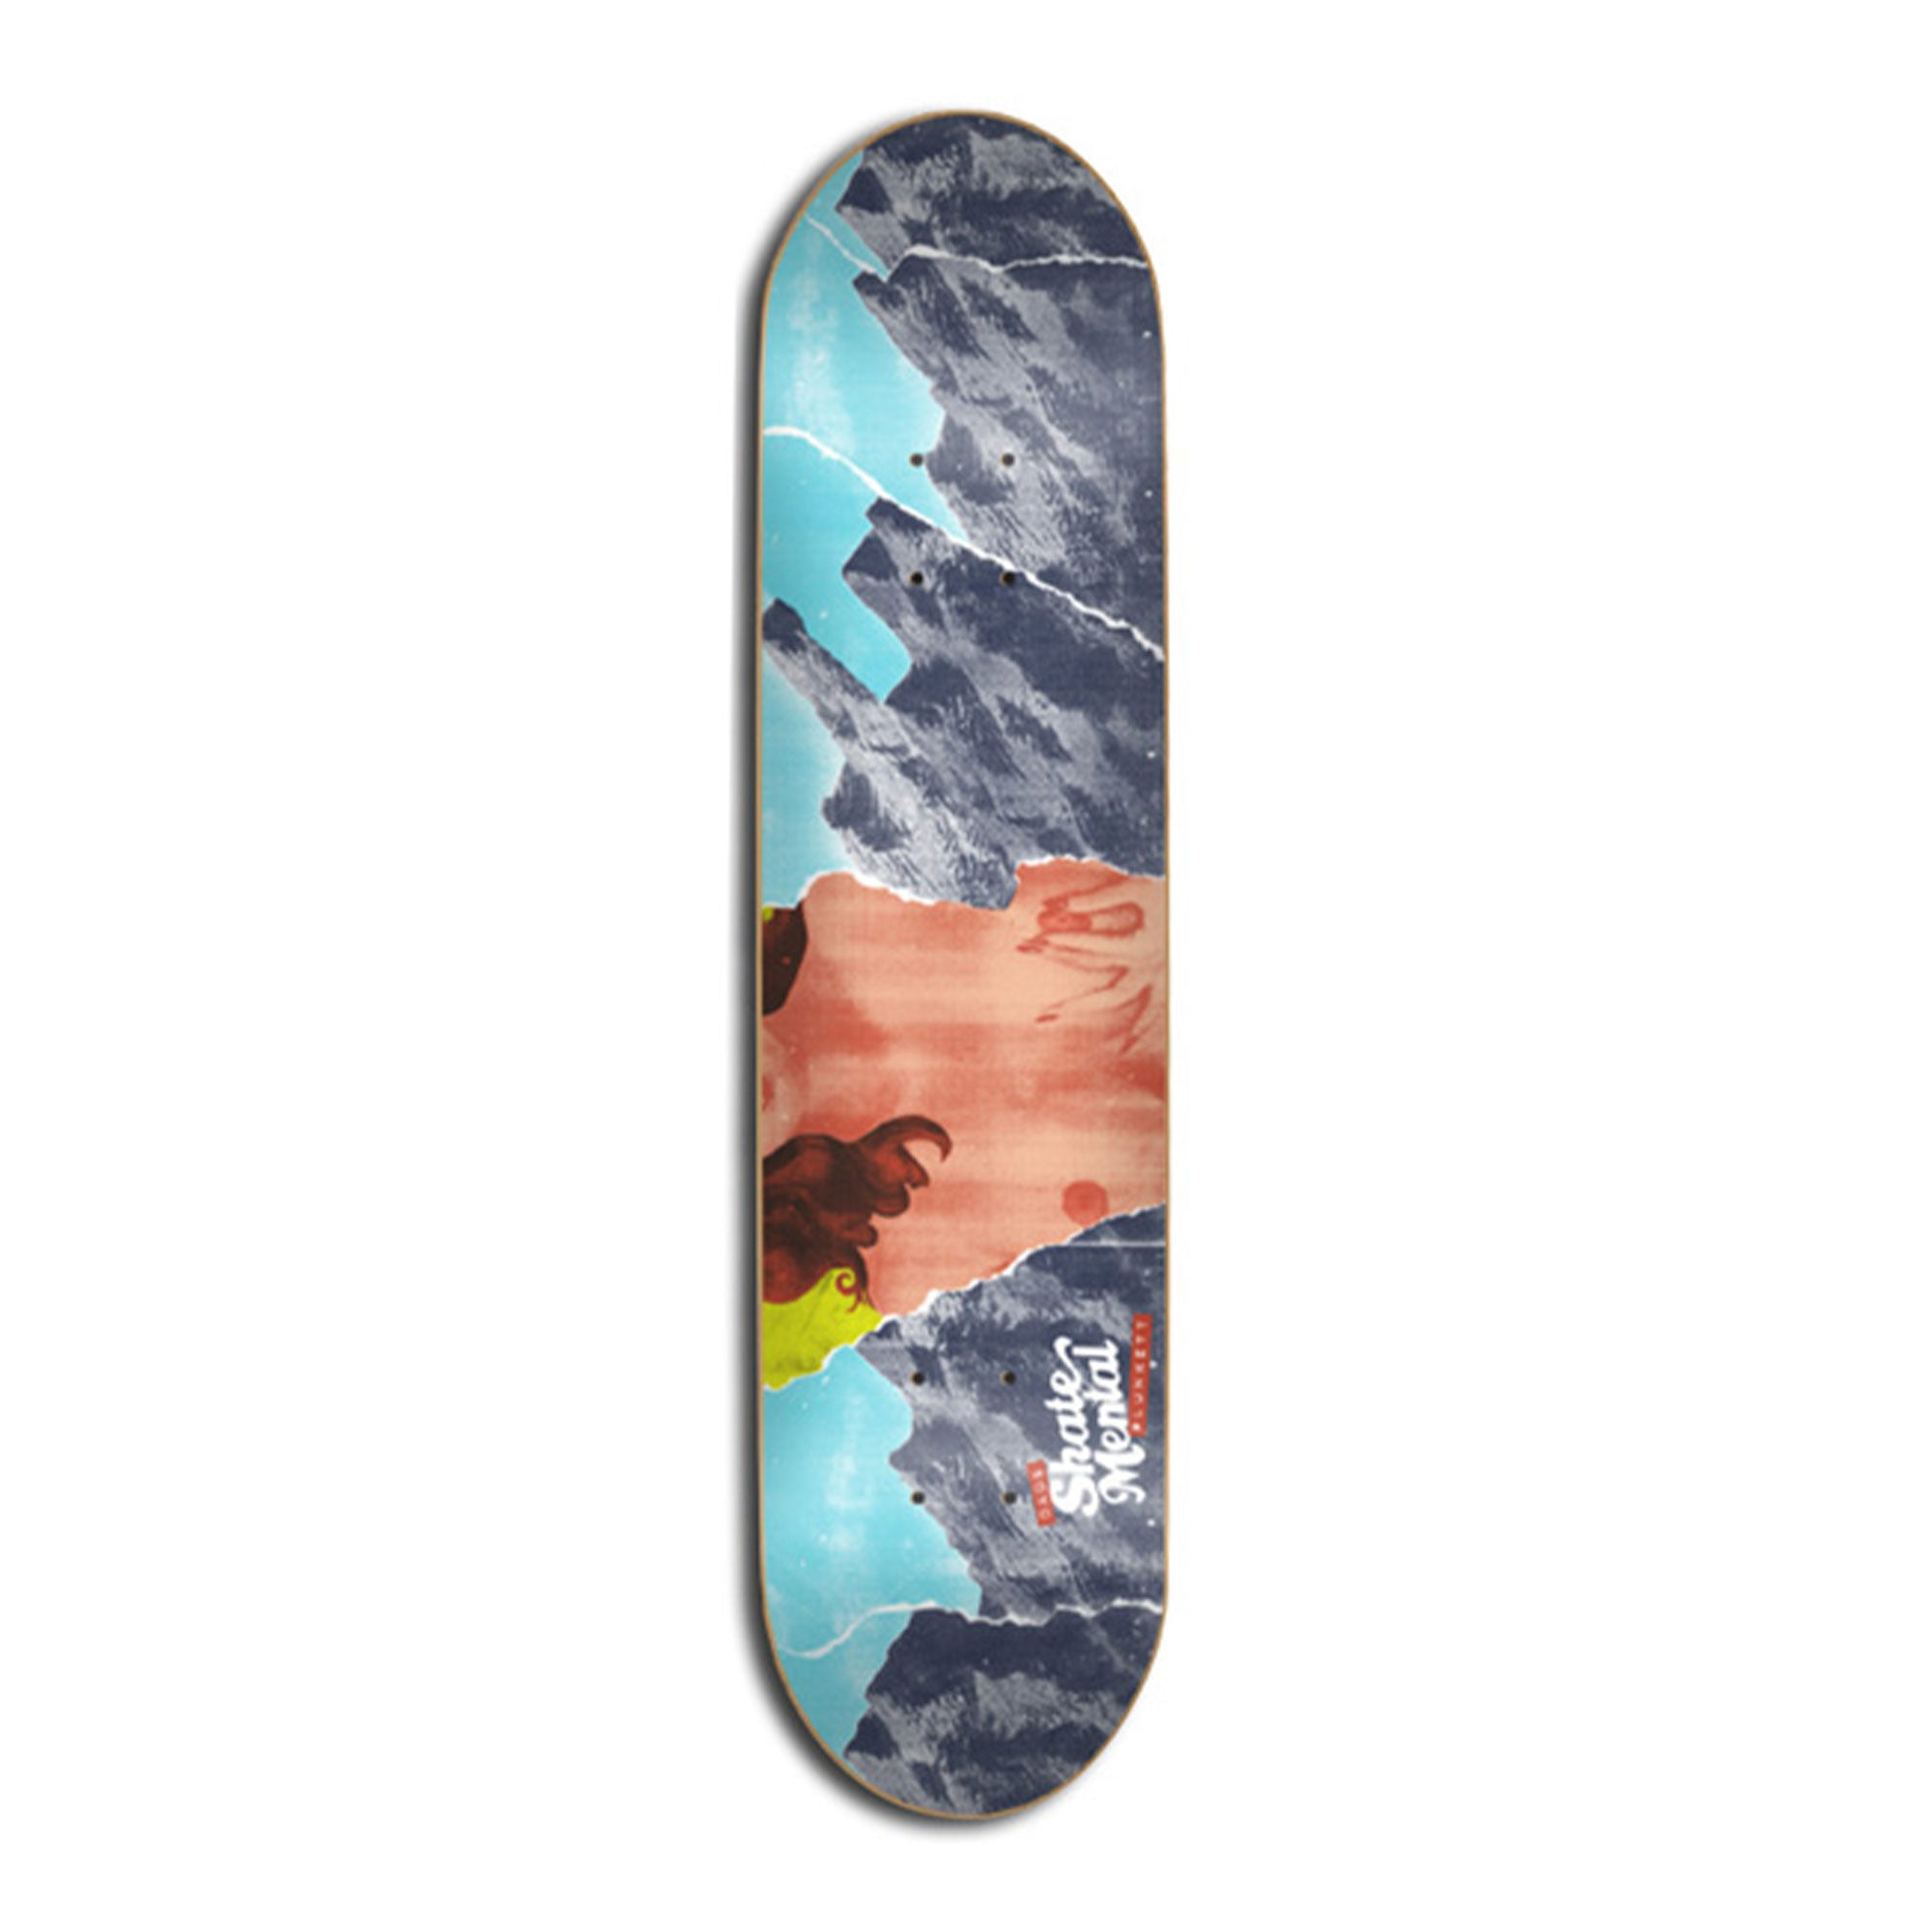 Skate Mental Dads Plunkett Deck Product Photo #1